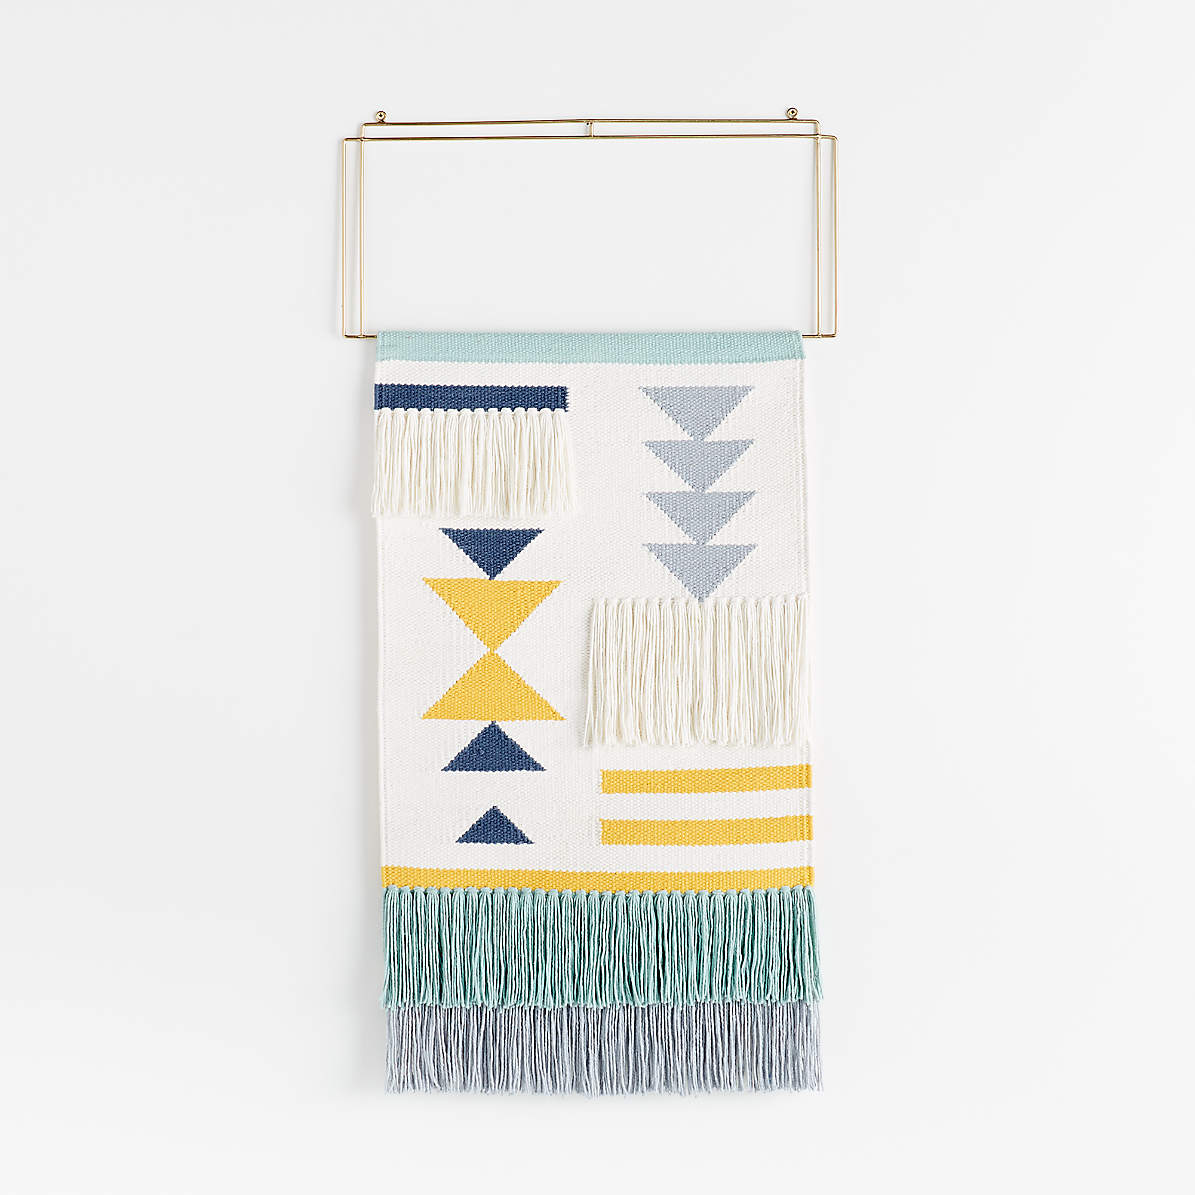 Hanging Woven Wall Decor Reviews Crate And Barrel Canada